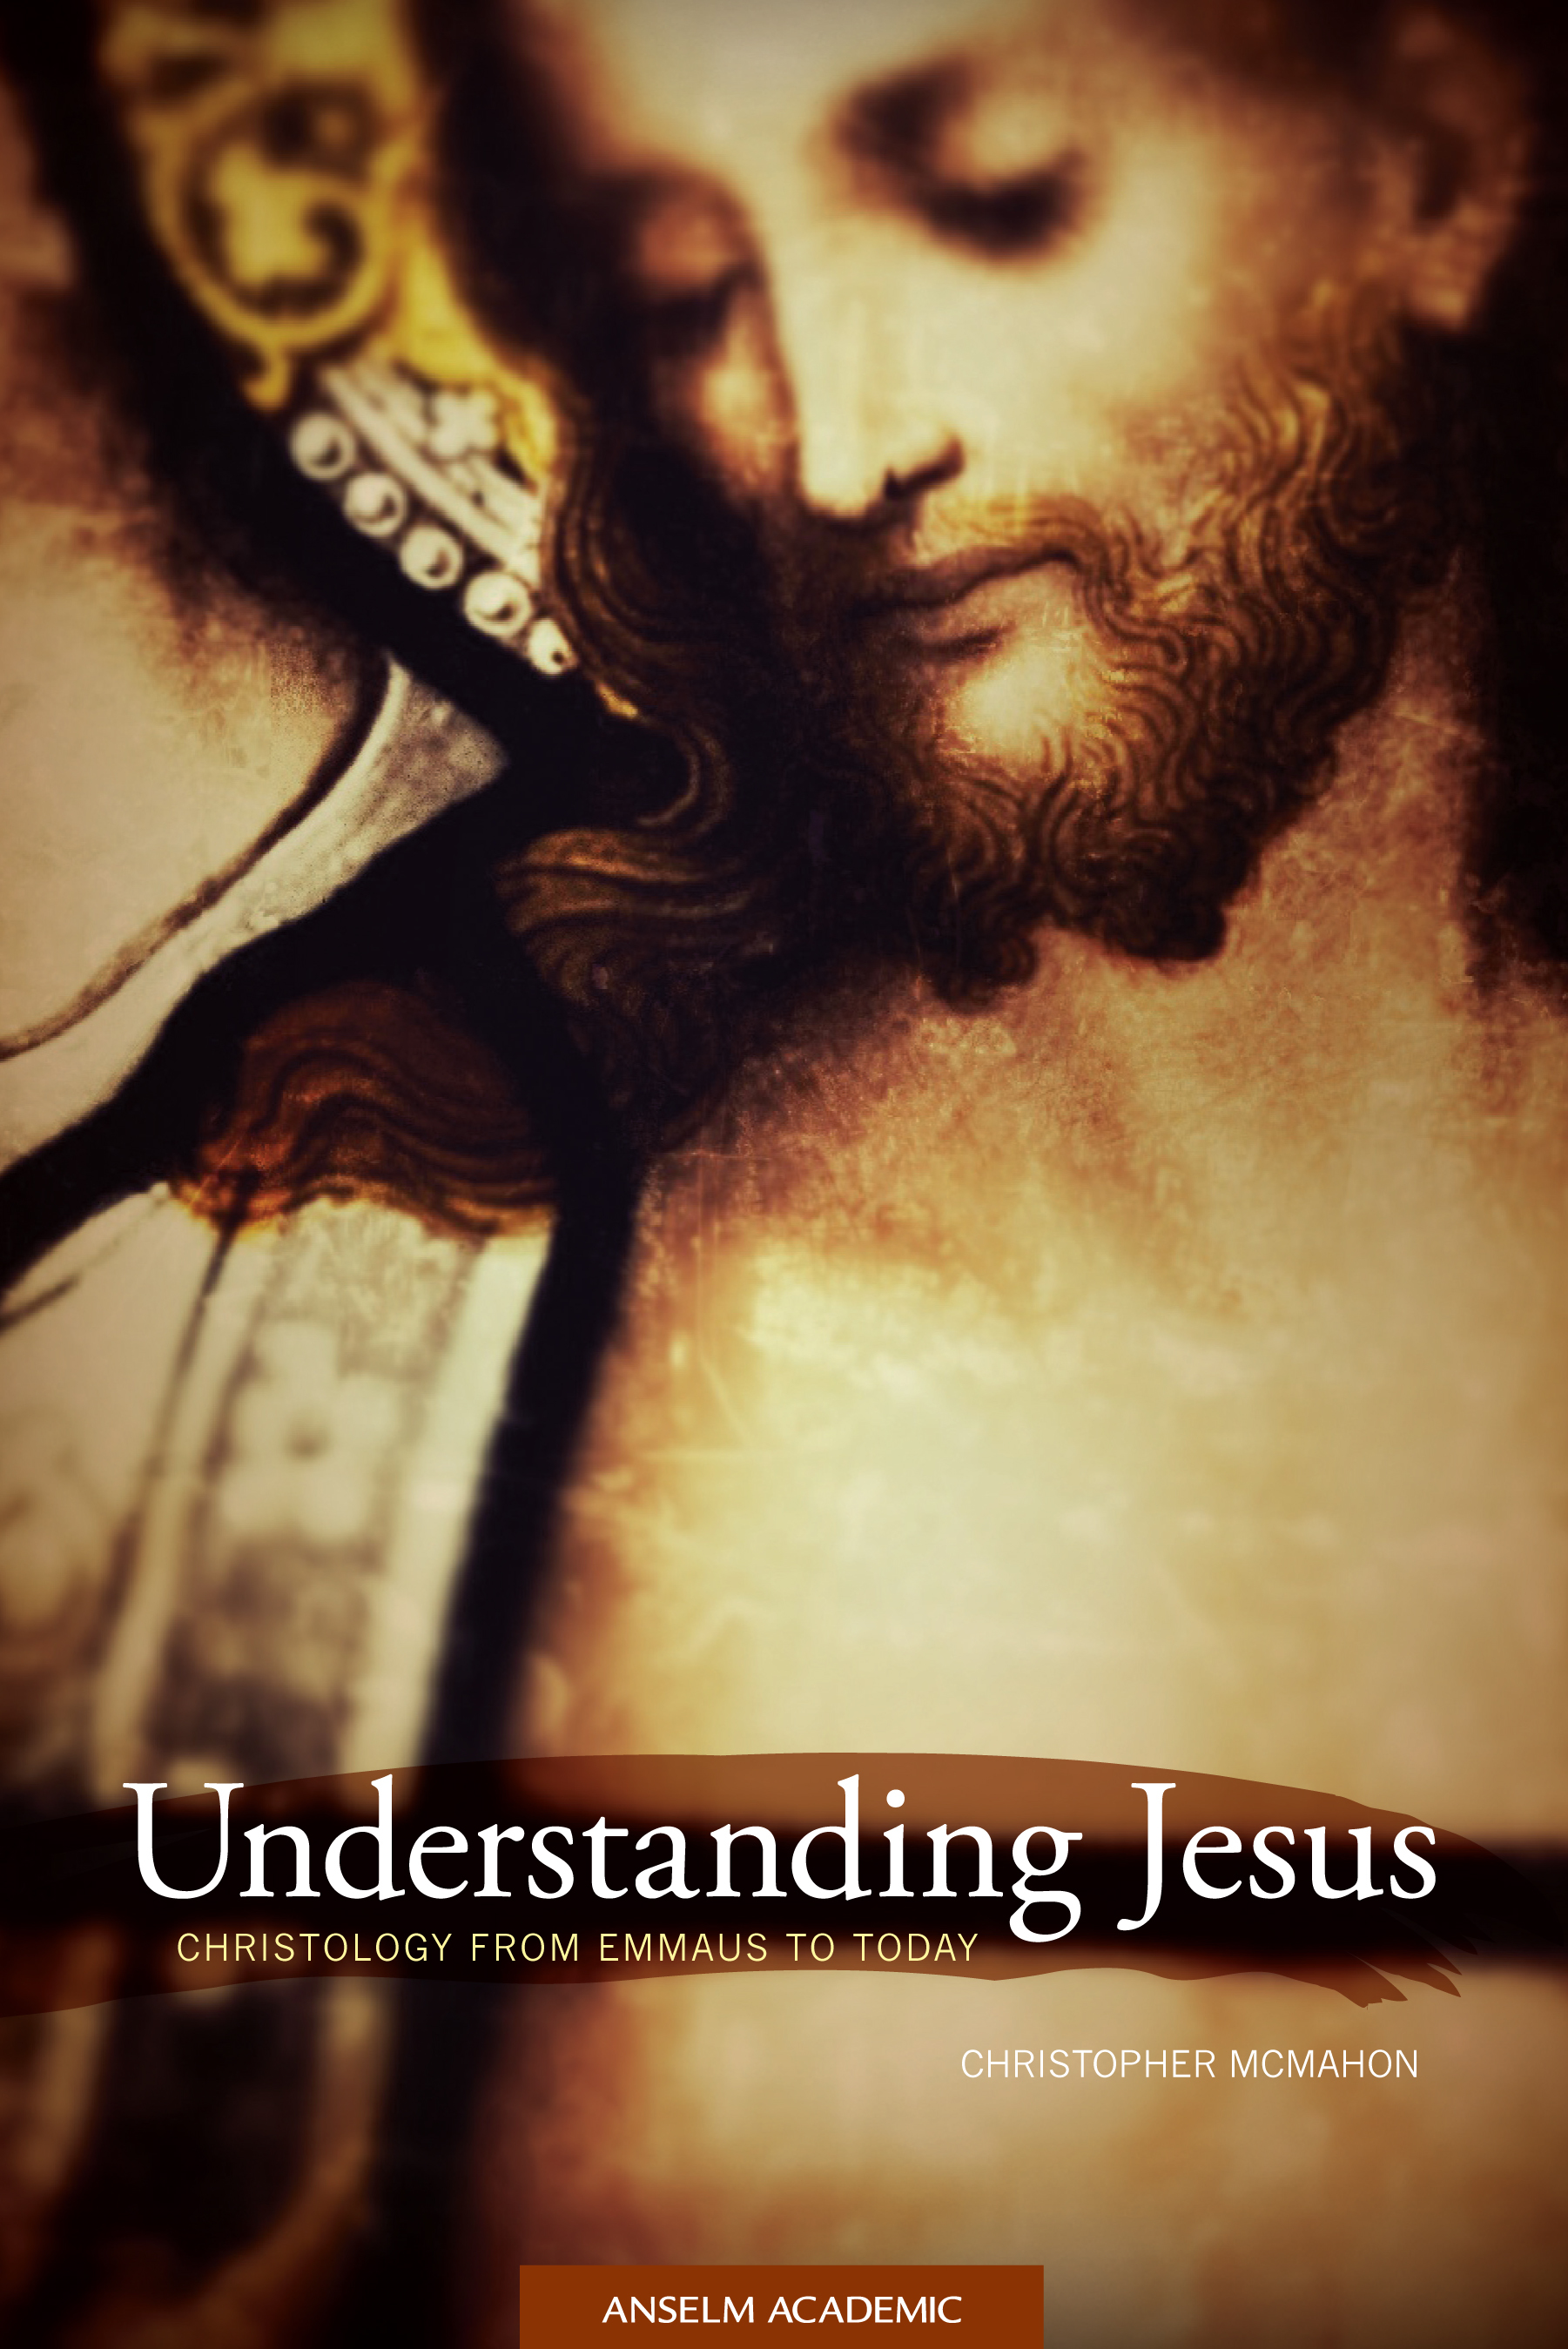 Understanding Jesus: Christology from Emmaus to Today